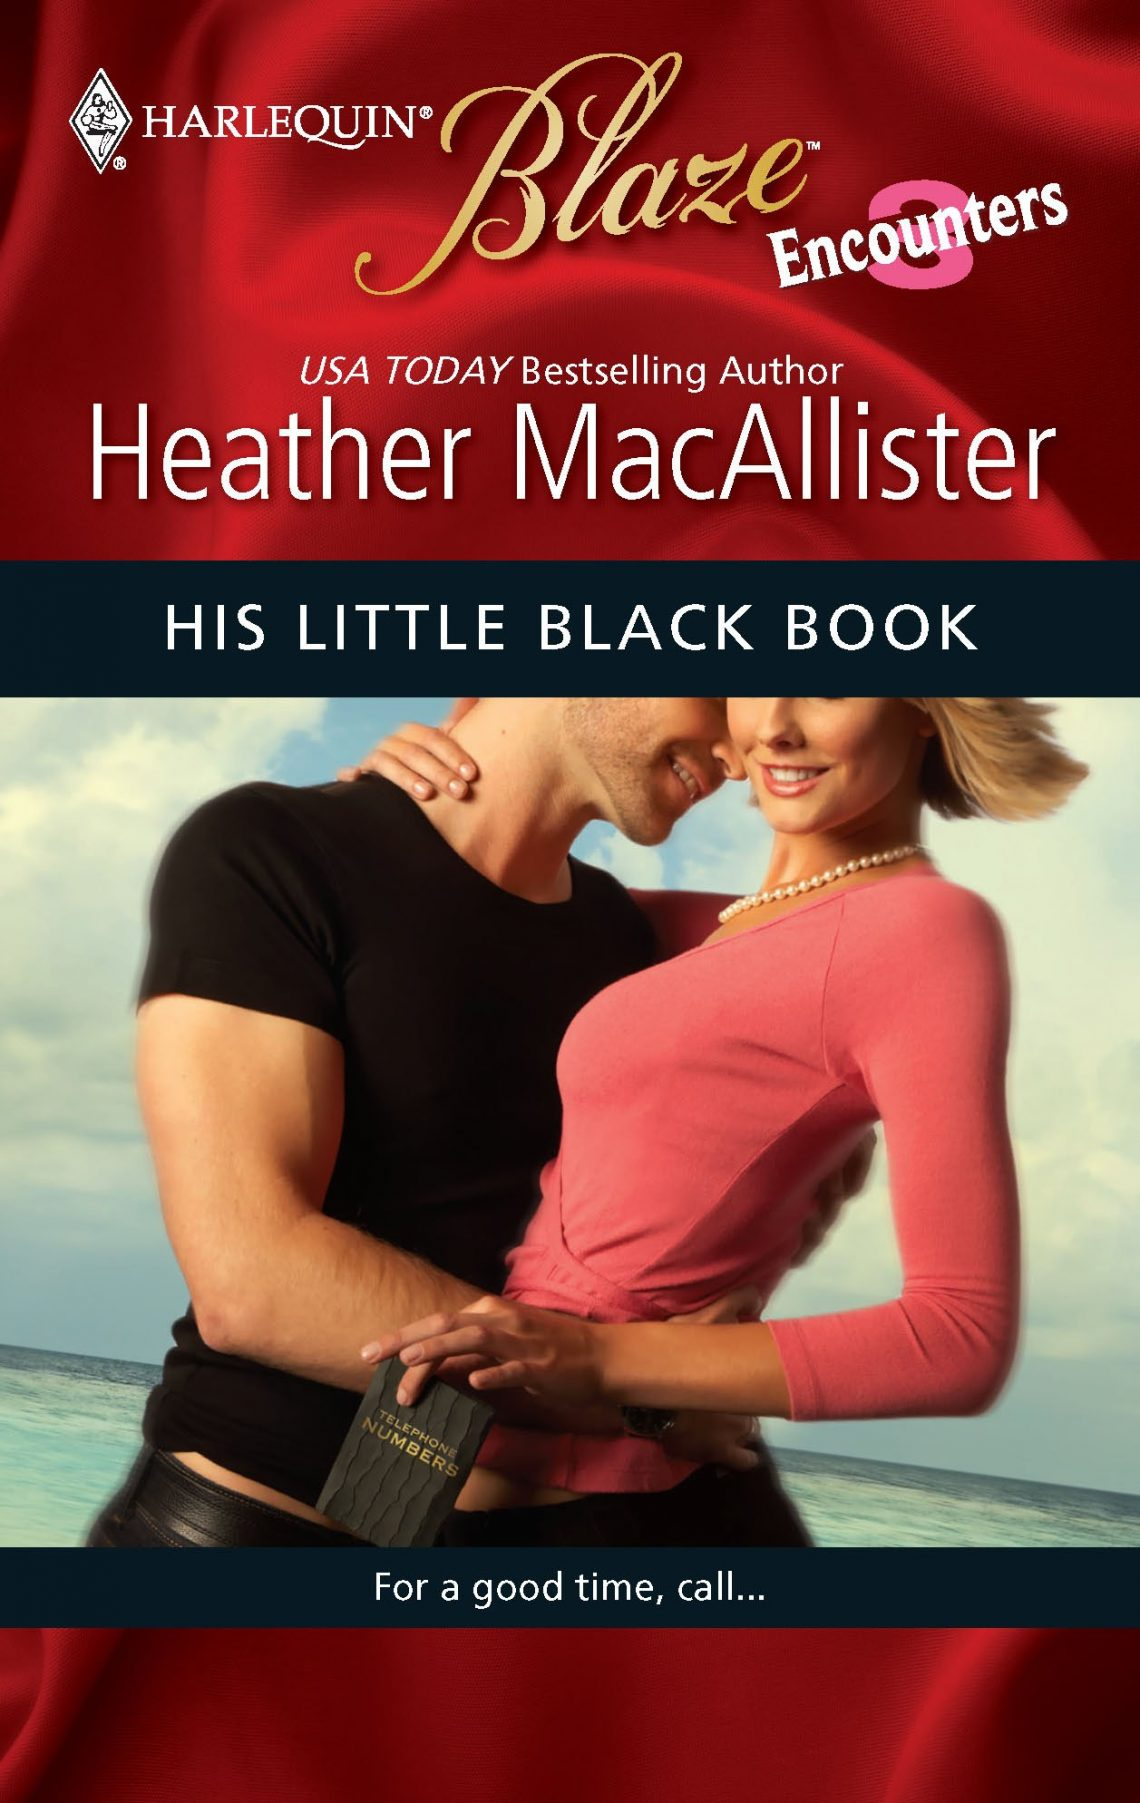 His Little Black Book by Heather MacAllister